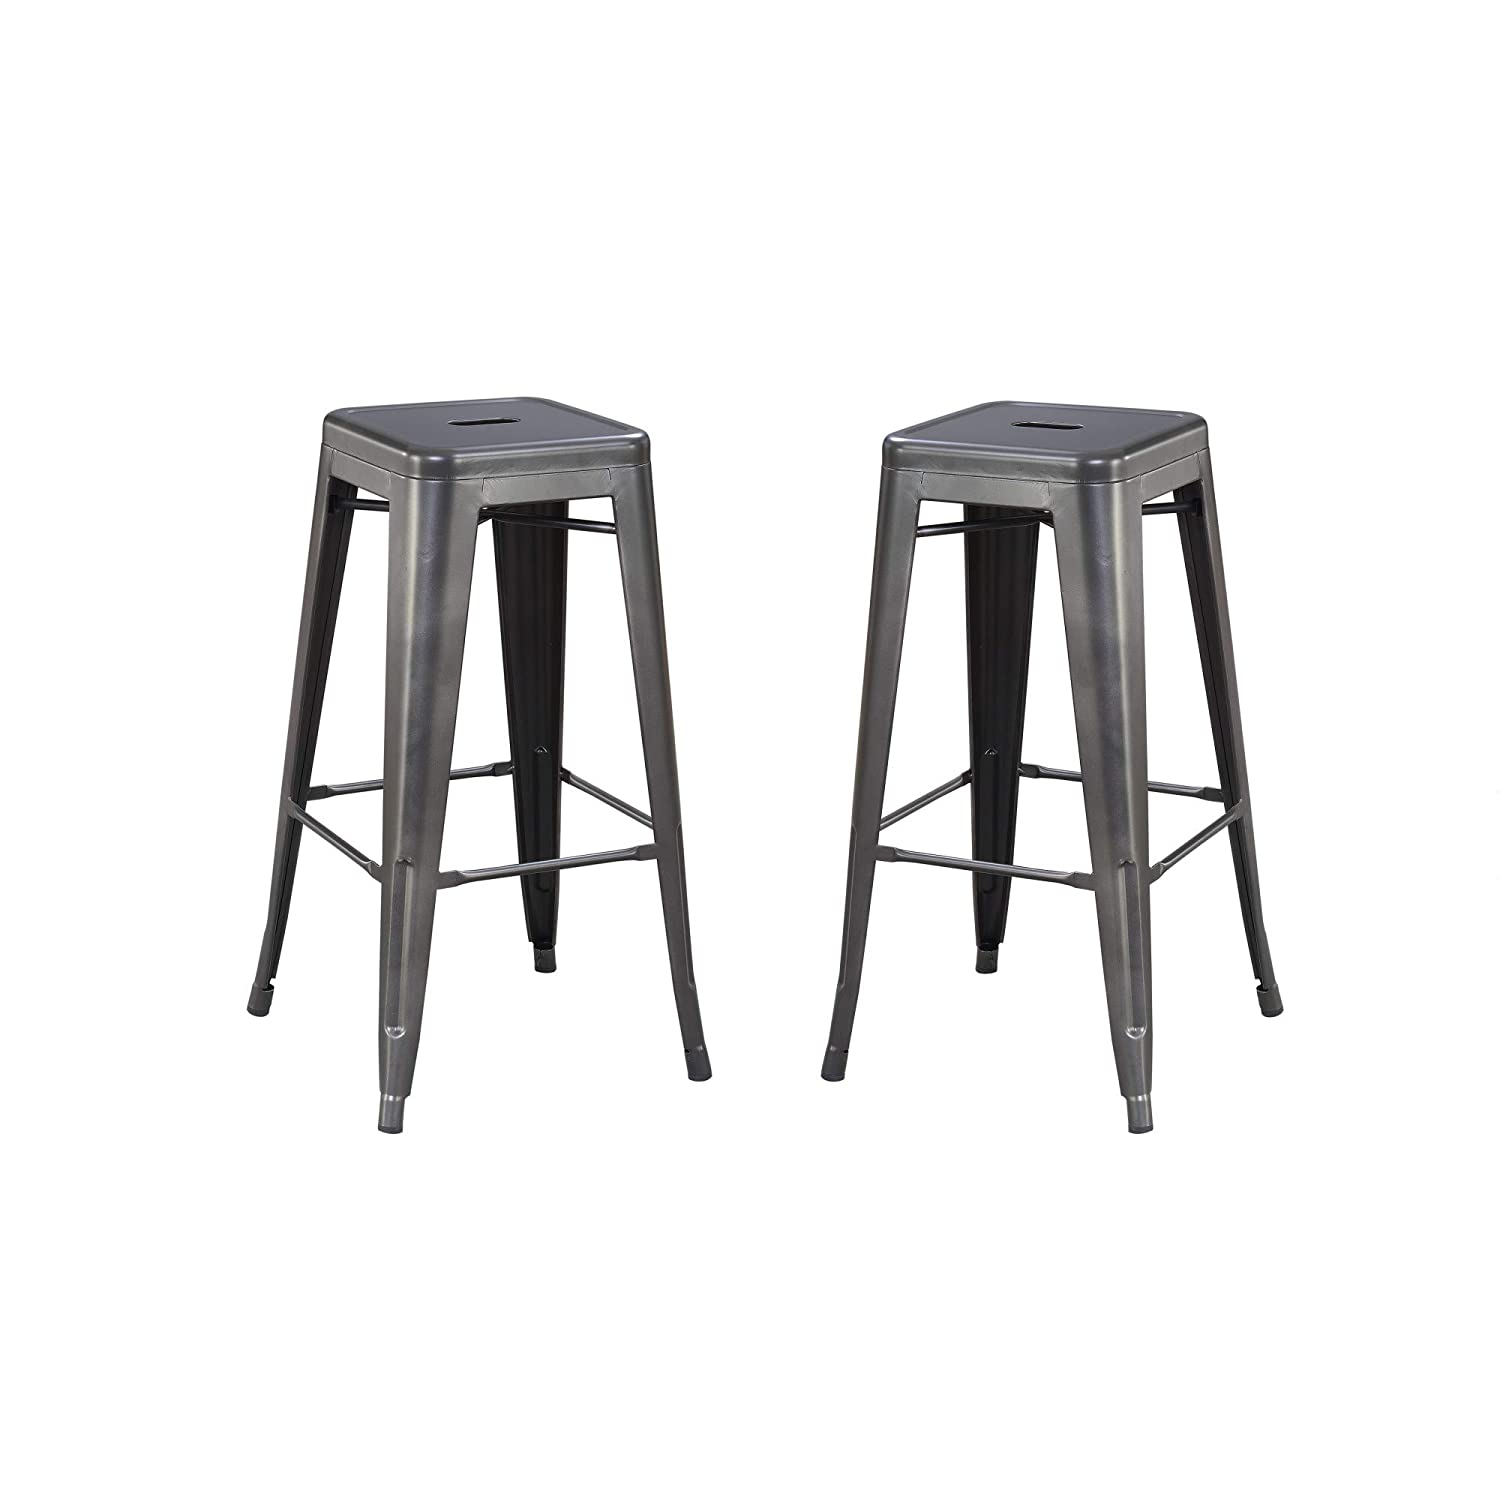 Archer 30 Bar Stool in Sleek Charcoal with All Metal Seat And Frame, Set of Two, by Artum Hill